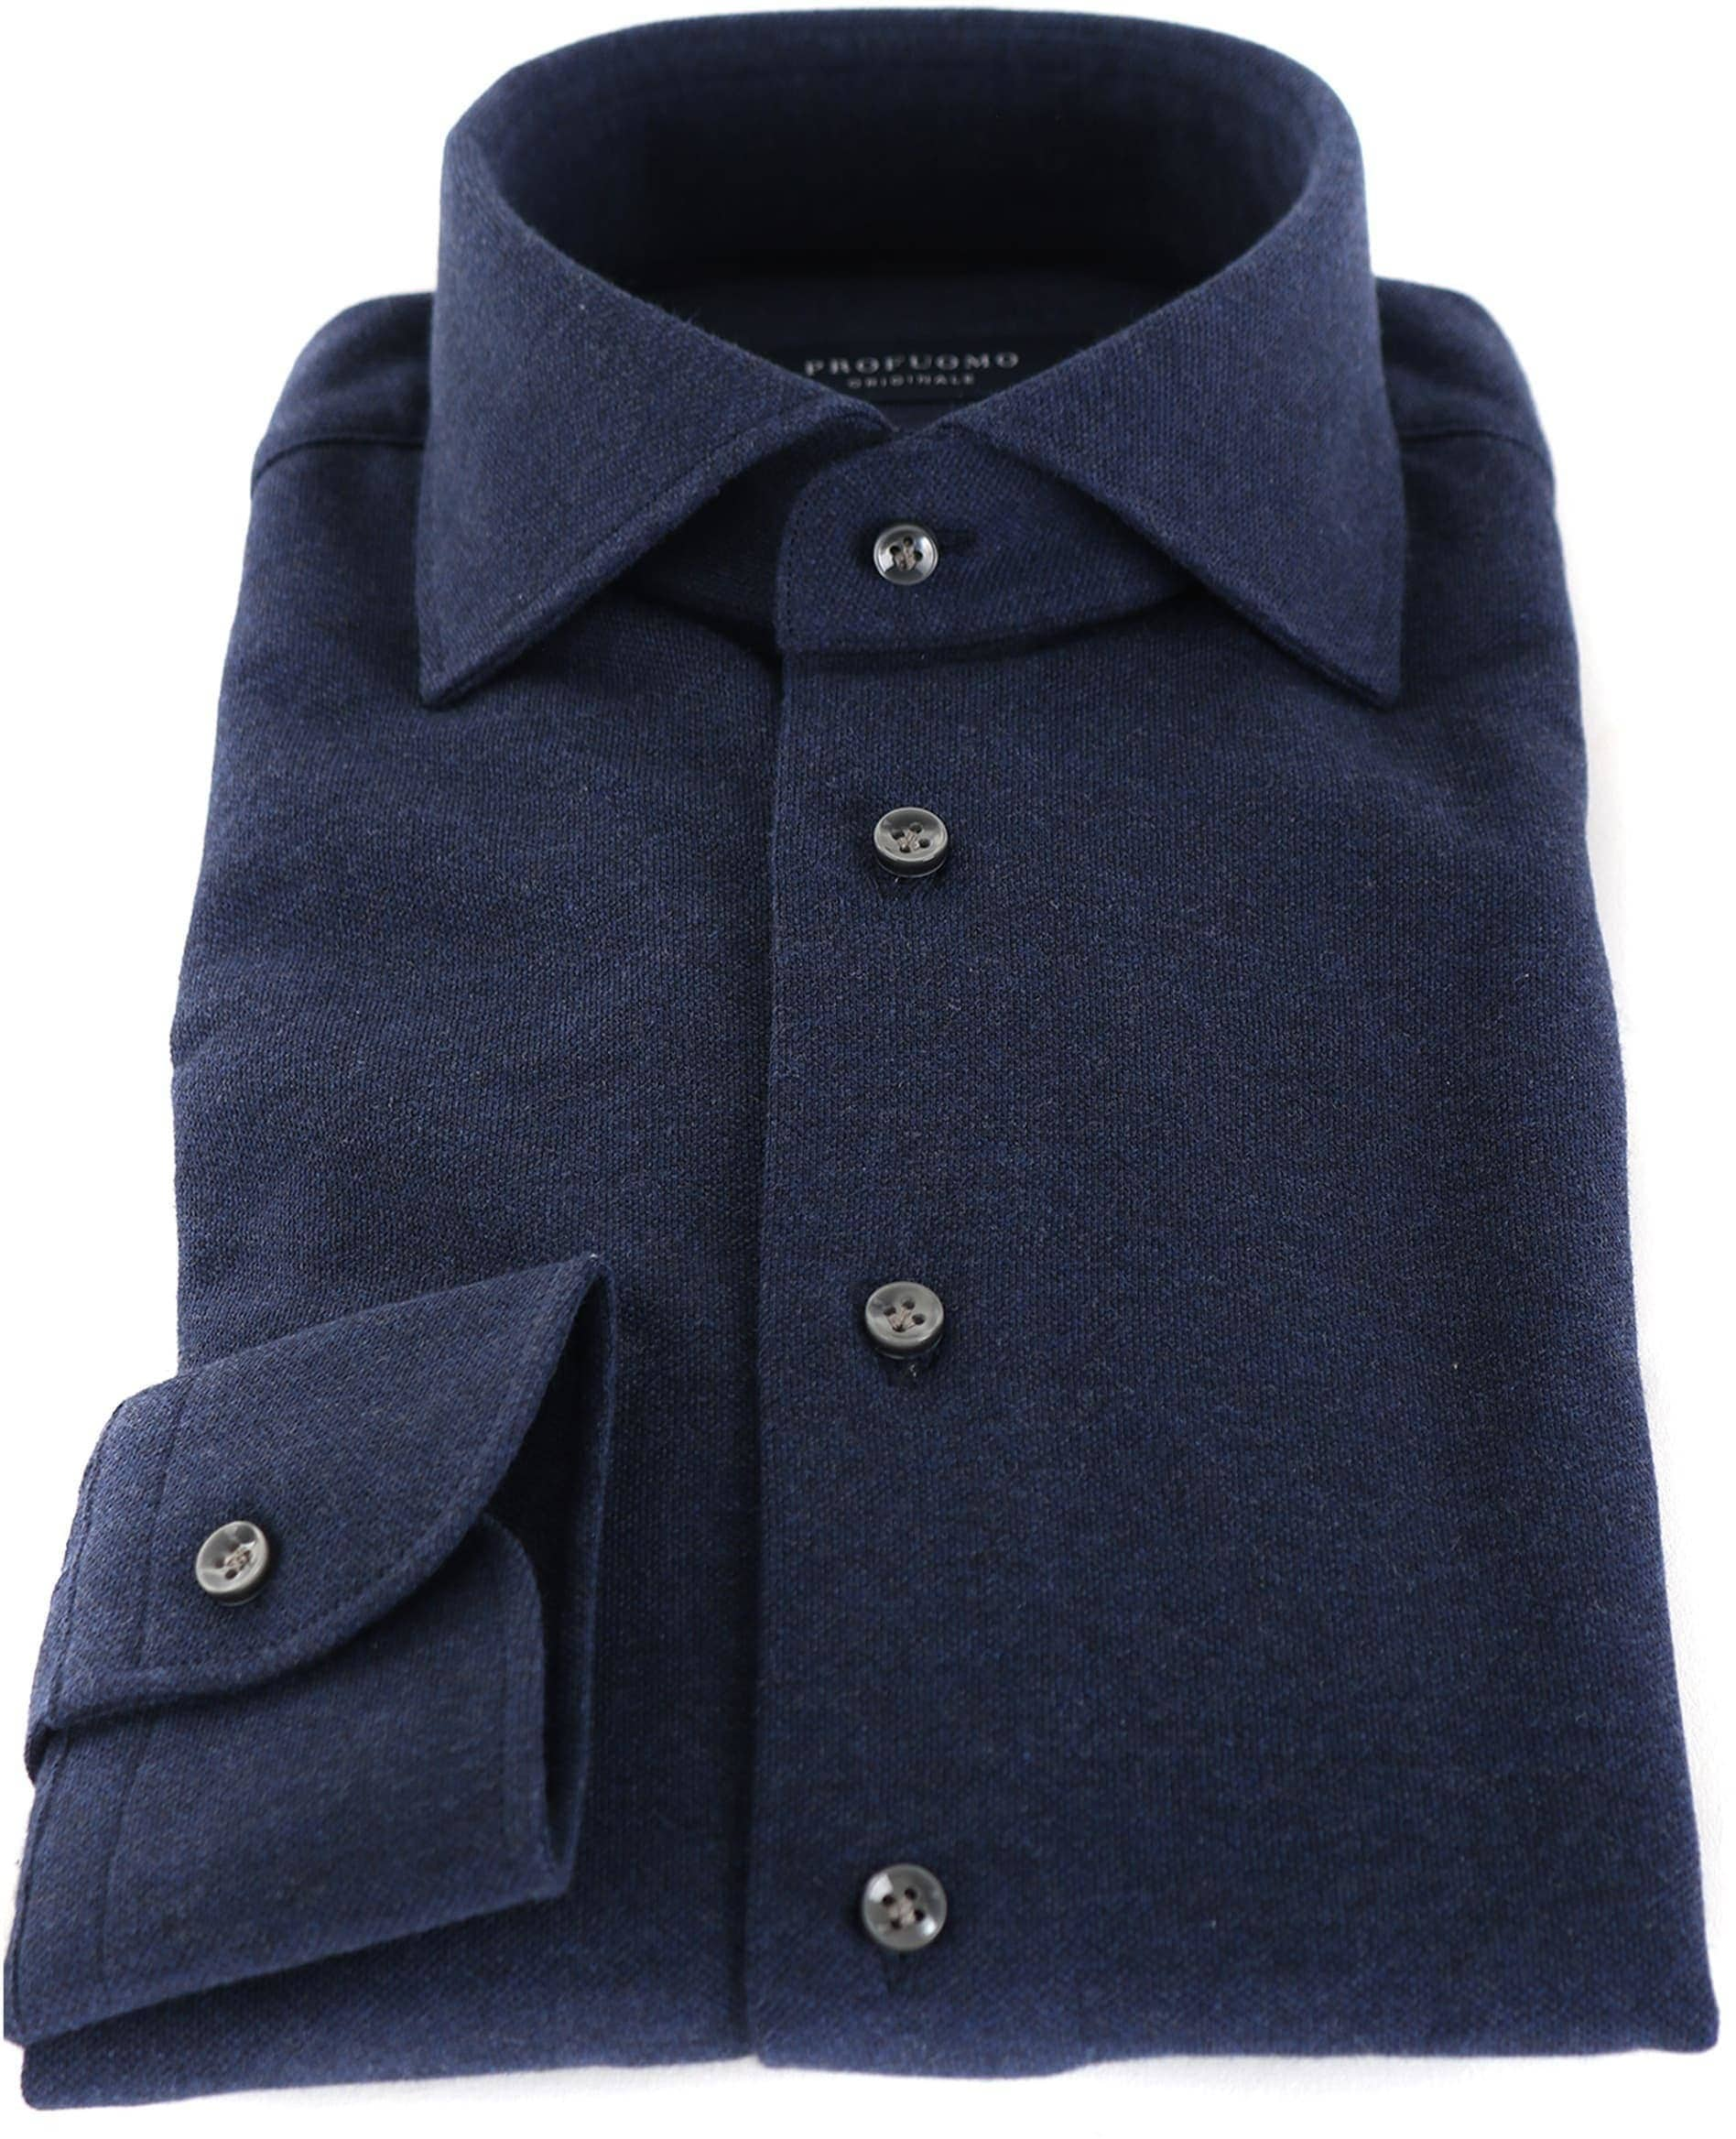 Profuomo Overhemd Knitted Donkerblauw foto 1